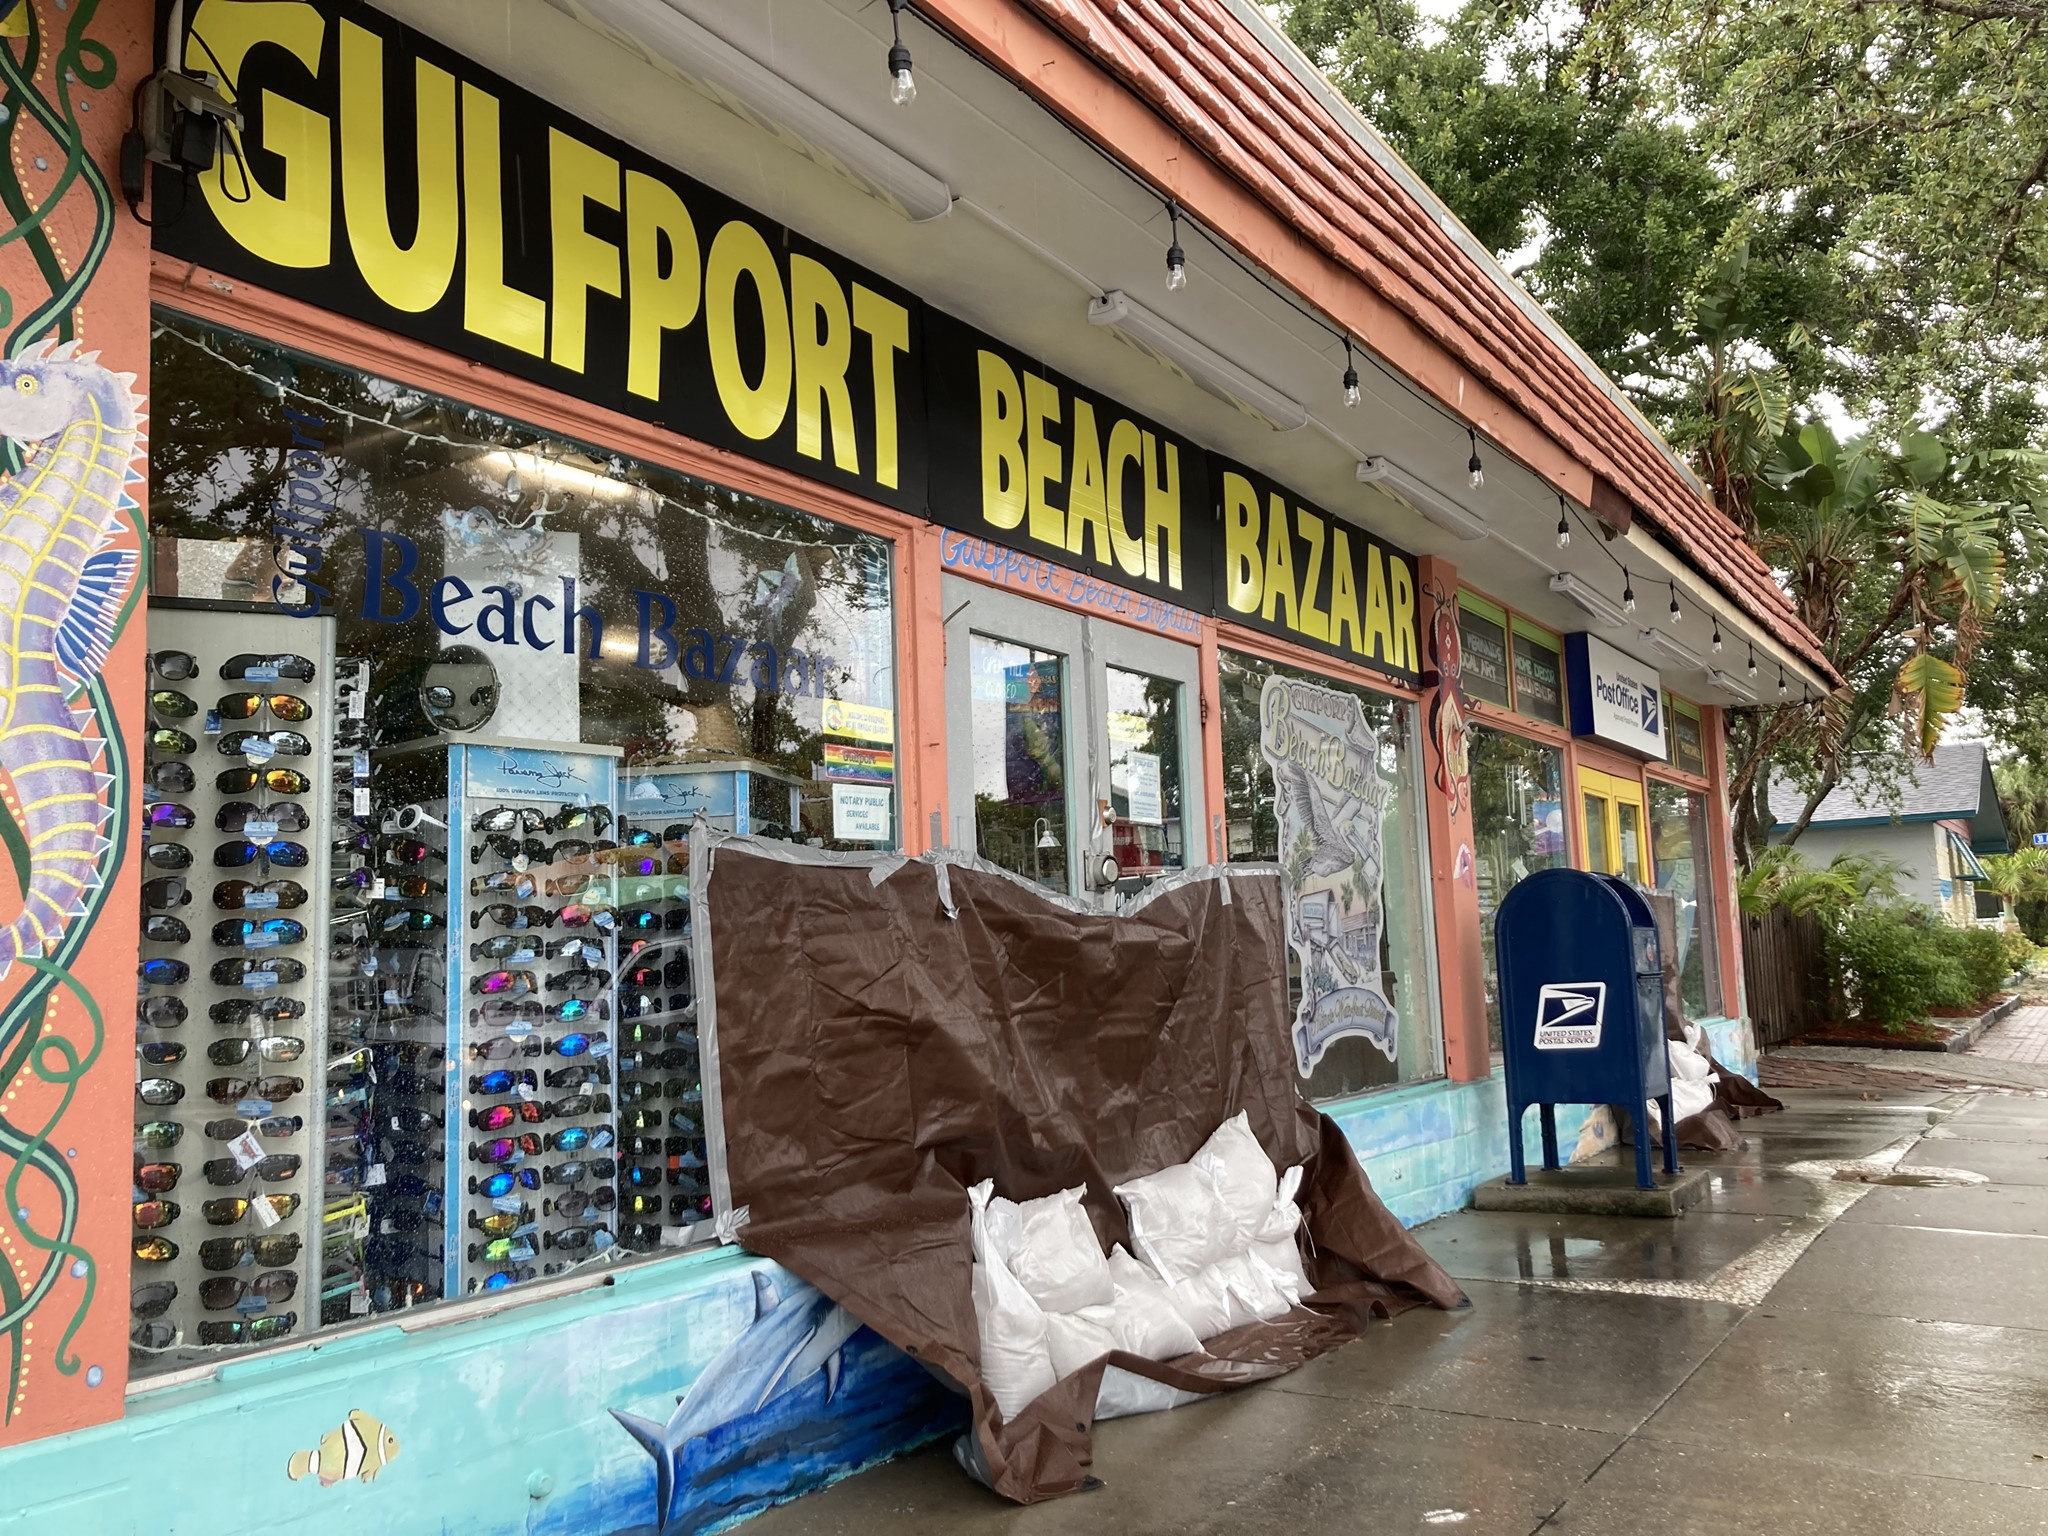 """A shop front with a sign that reads """"Gulfport Beach Bazaar"""" with the doorway trapped up and sandbagged."""